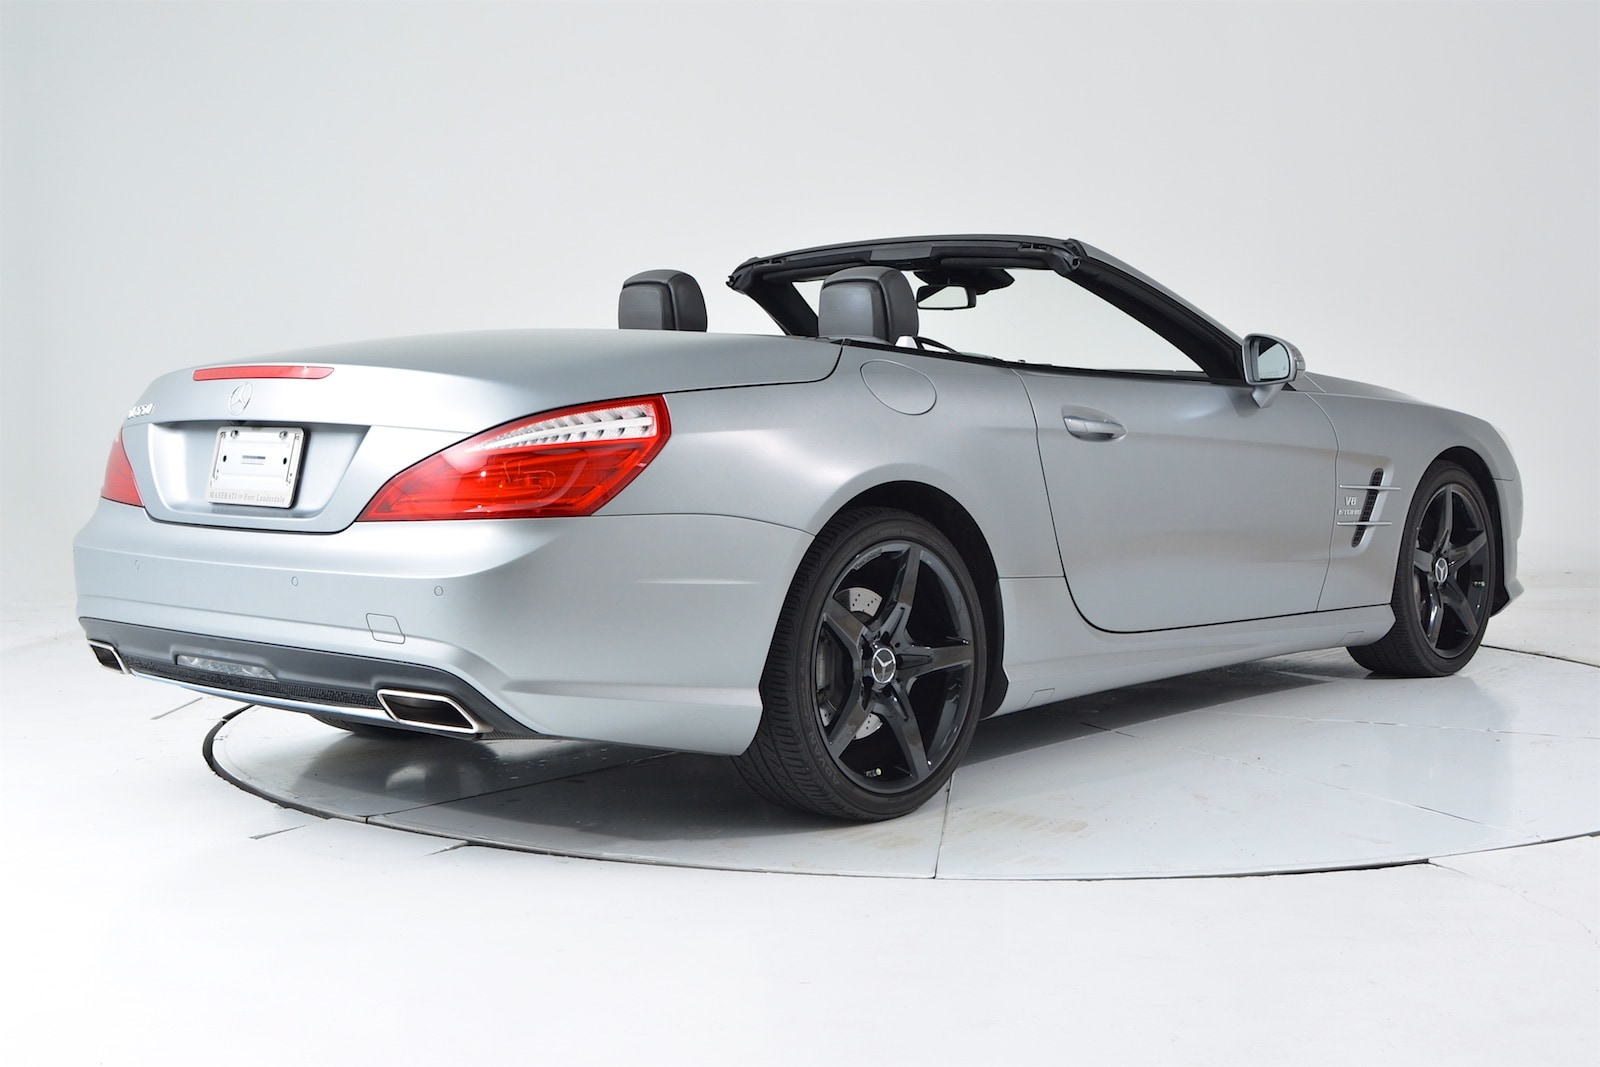 ... 2014 MERCEDES BENZ SL550 Convertible For Sale In Fort Lauderdale, FL At  Maserati Of ...